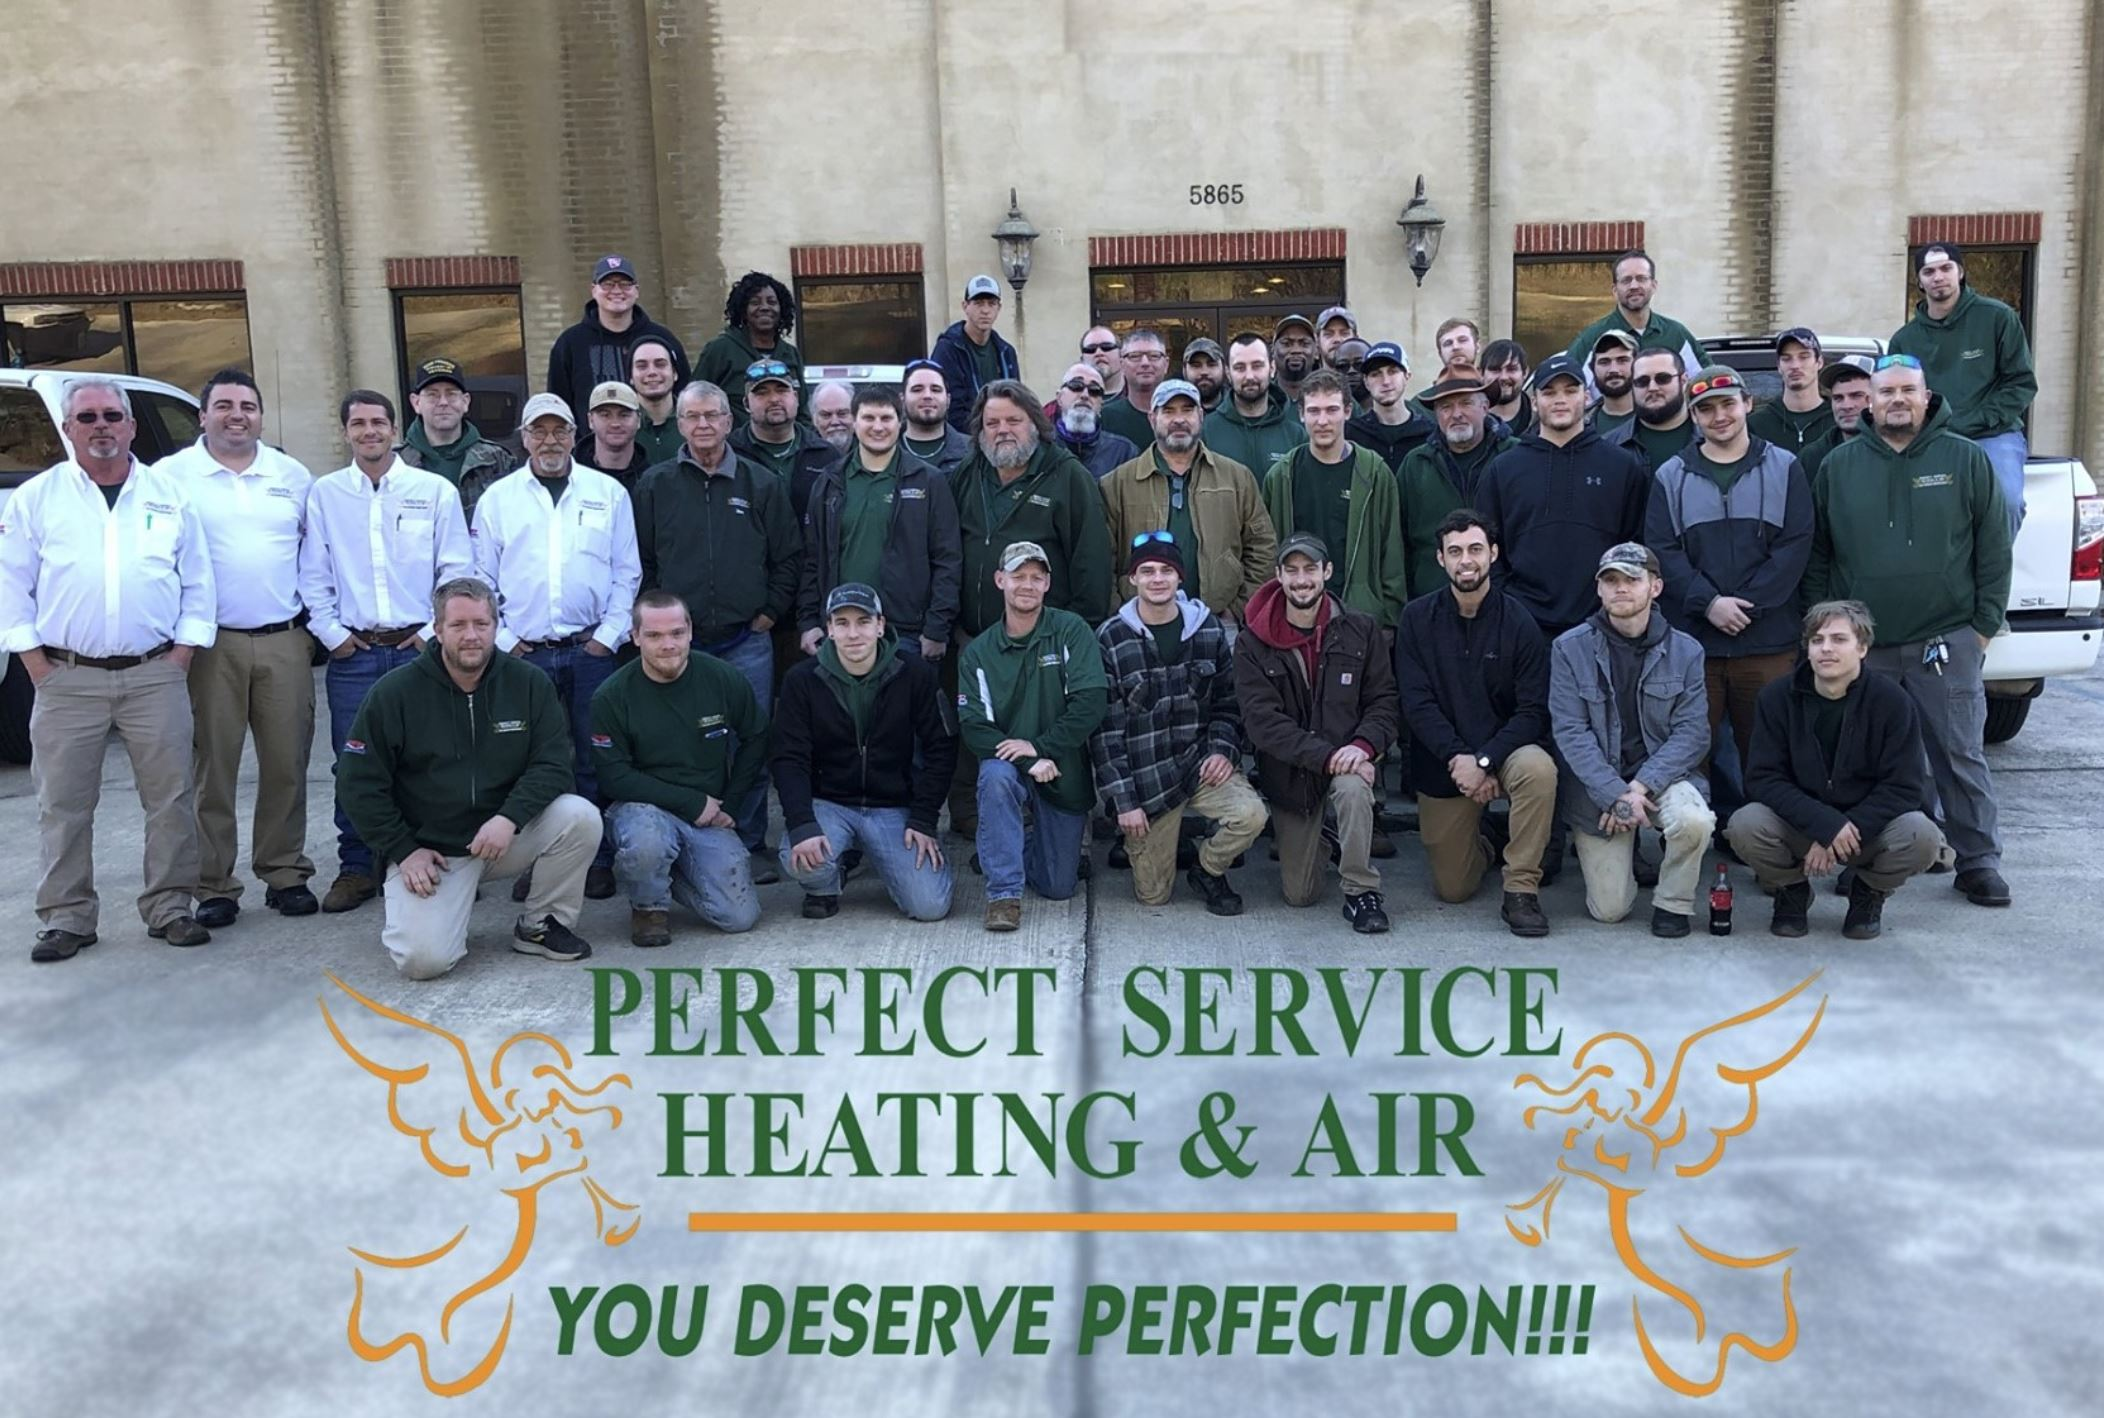 New heating and air business opens in Clay